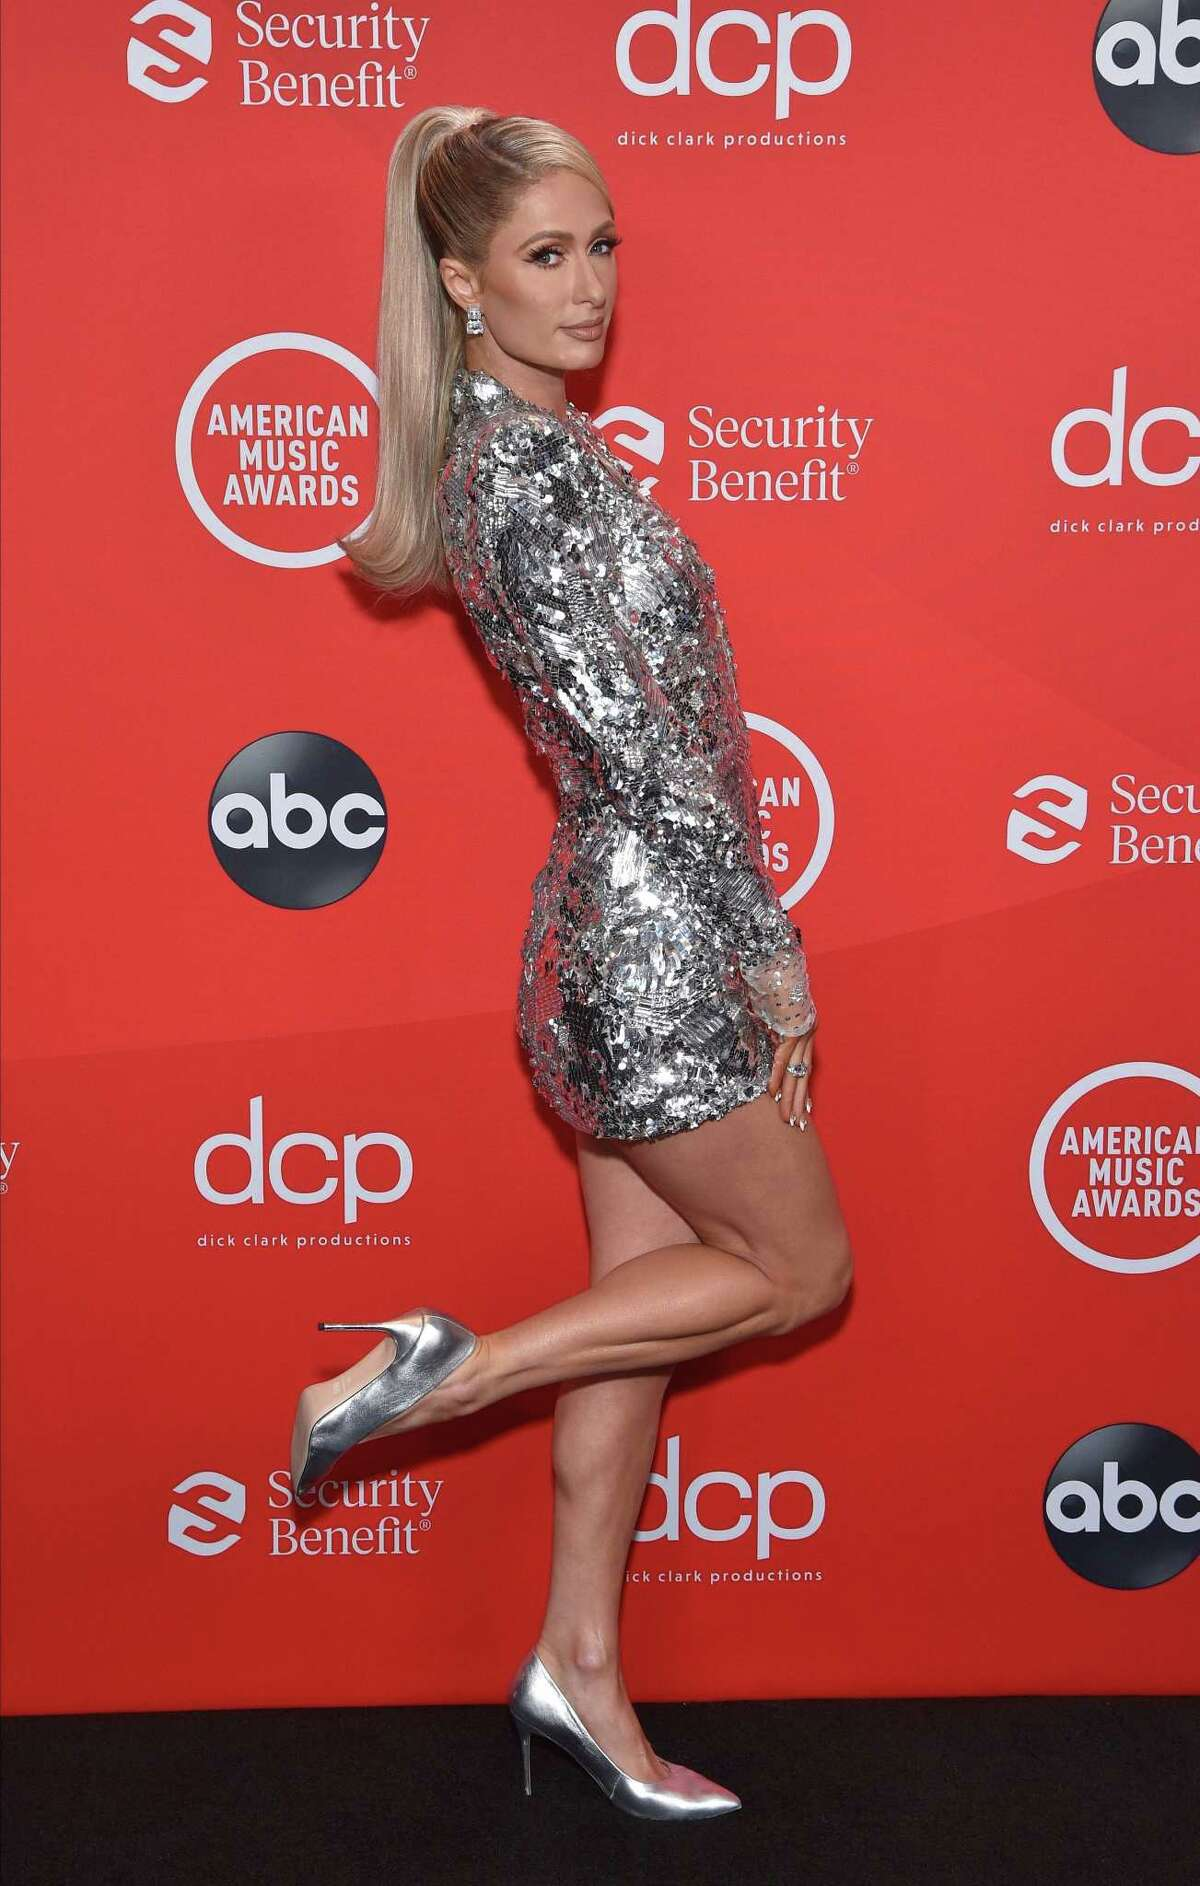 In this handout image courtesy of ABC socialite Paris Hilton poses during the 2020 American Music Awards aired from the Microsoft theatre on November 22, 2020 in Los Angeles. (Photo by - / American Broadcasting Companies, Inc. / ABC / AFP) / RESTRICTED TO EDITORIAL USE - MANDATORY CREDIT